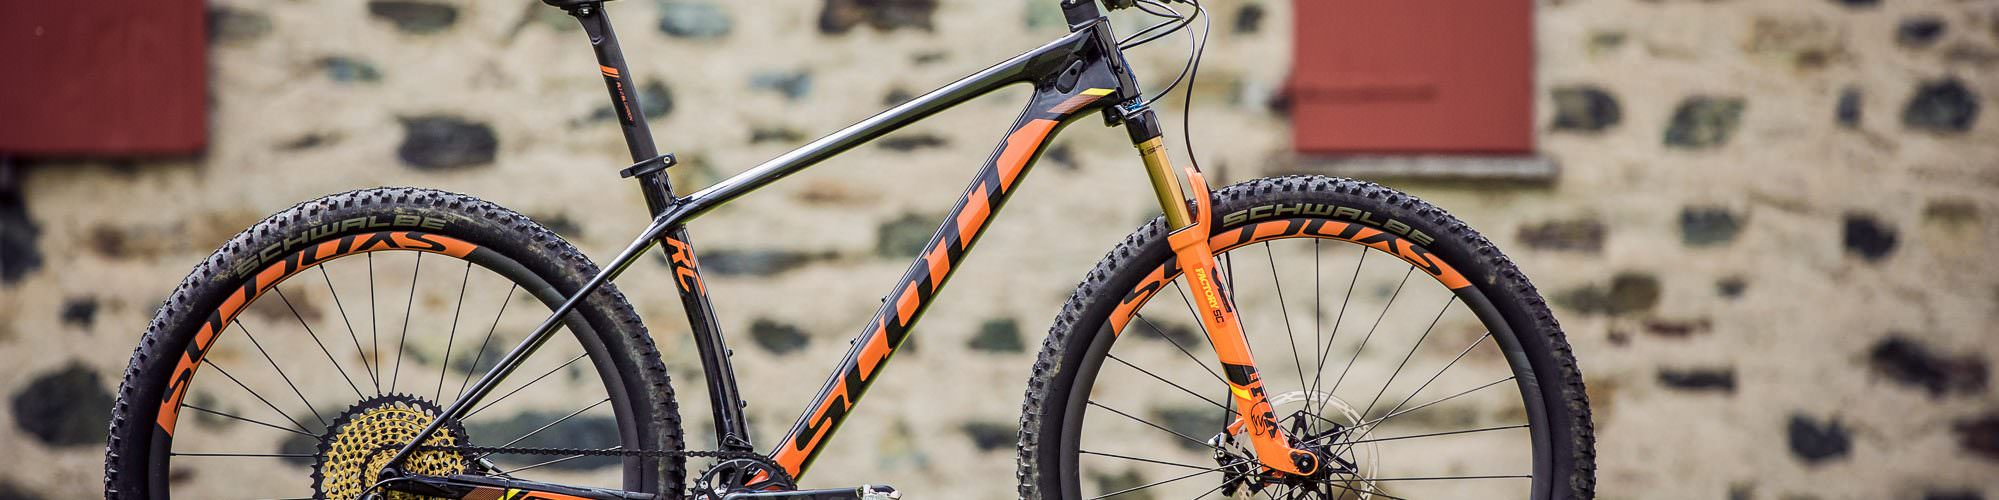 39e4a388674 First Look: The new sub 850 g SCOTT Scale 2017 | ENDURO Mountainbike ...